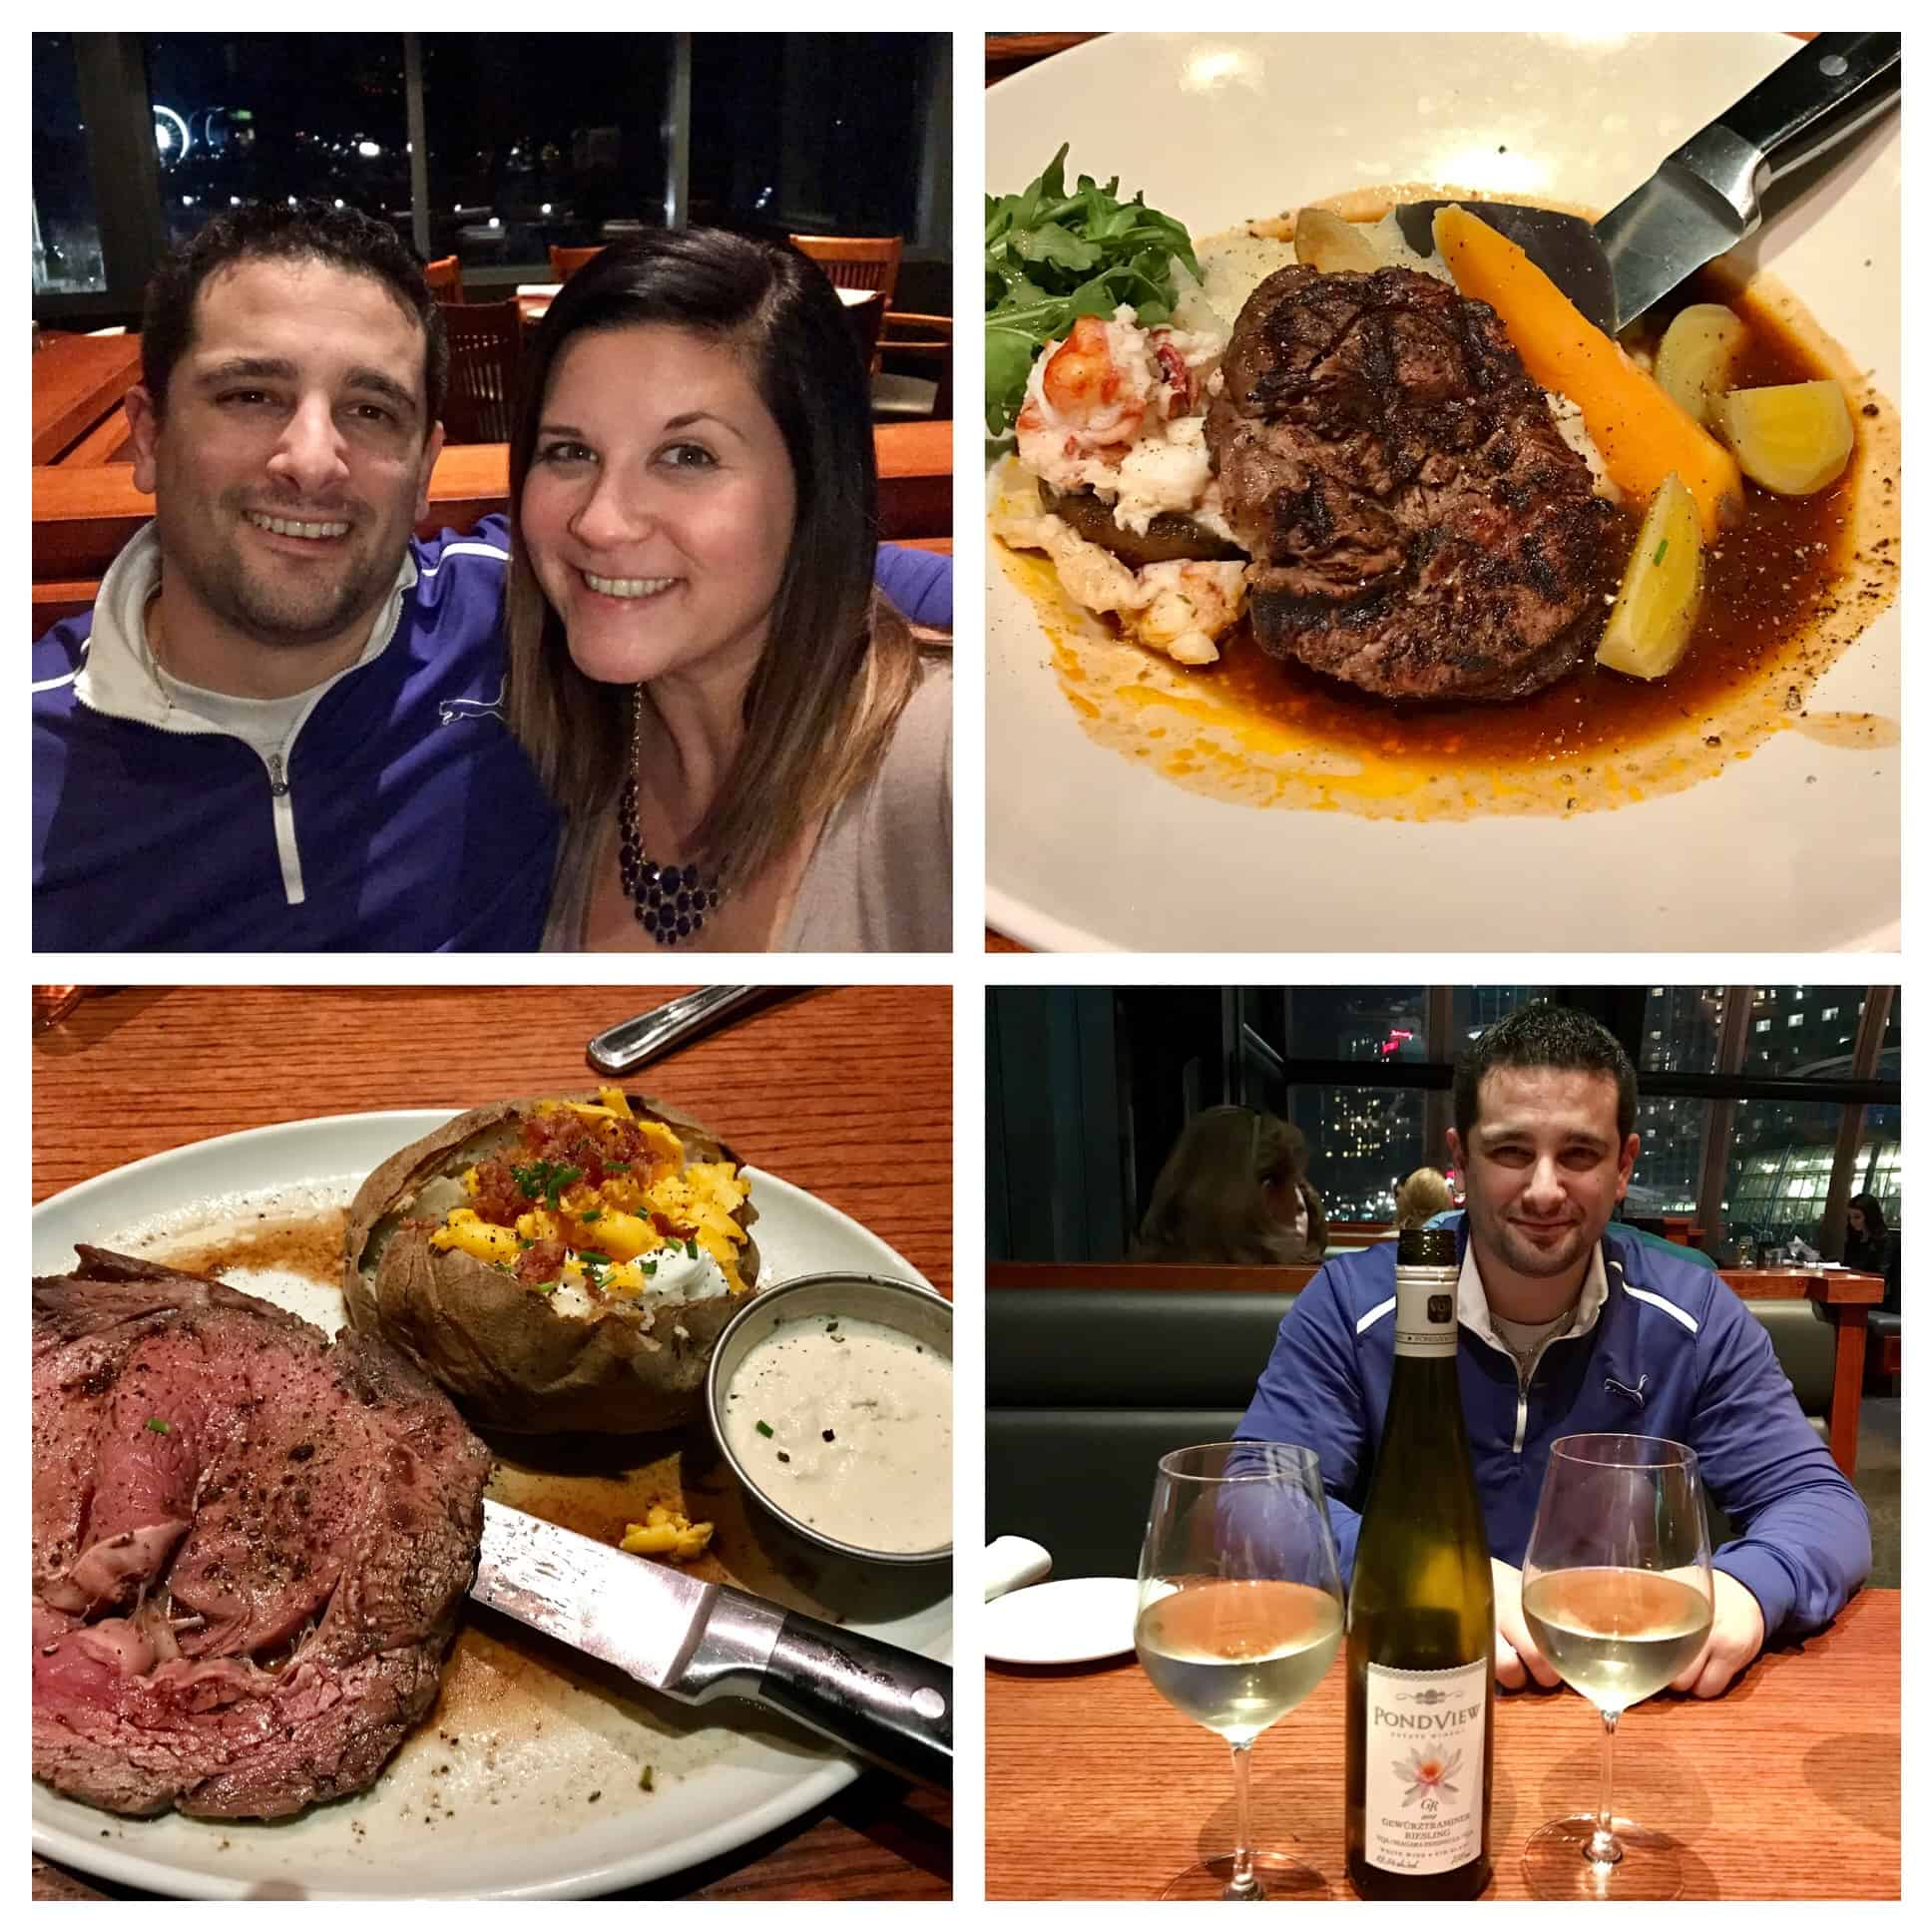 Collage of Caitlin and Andrew at dinner and steak meals